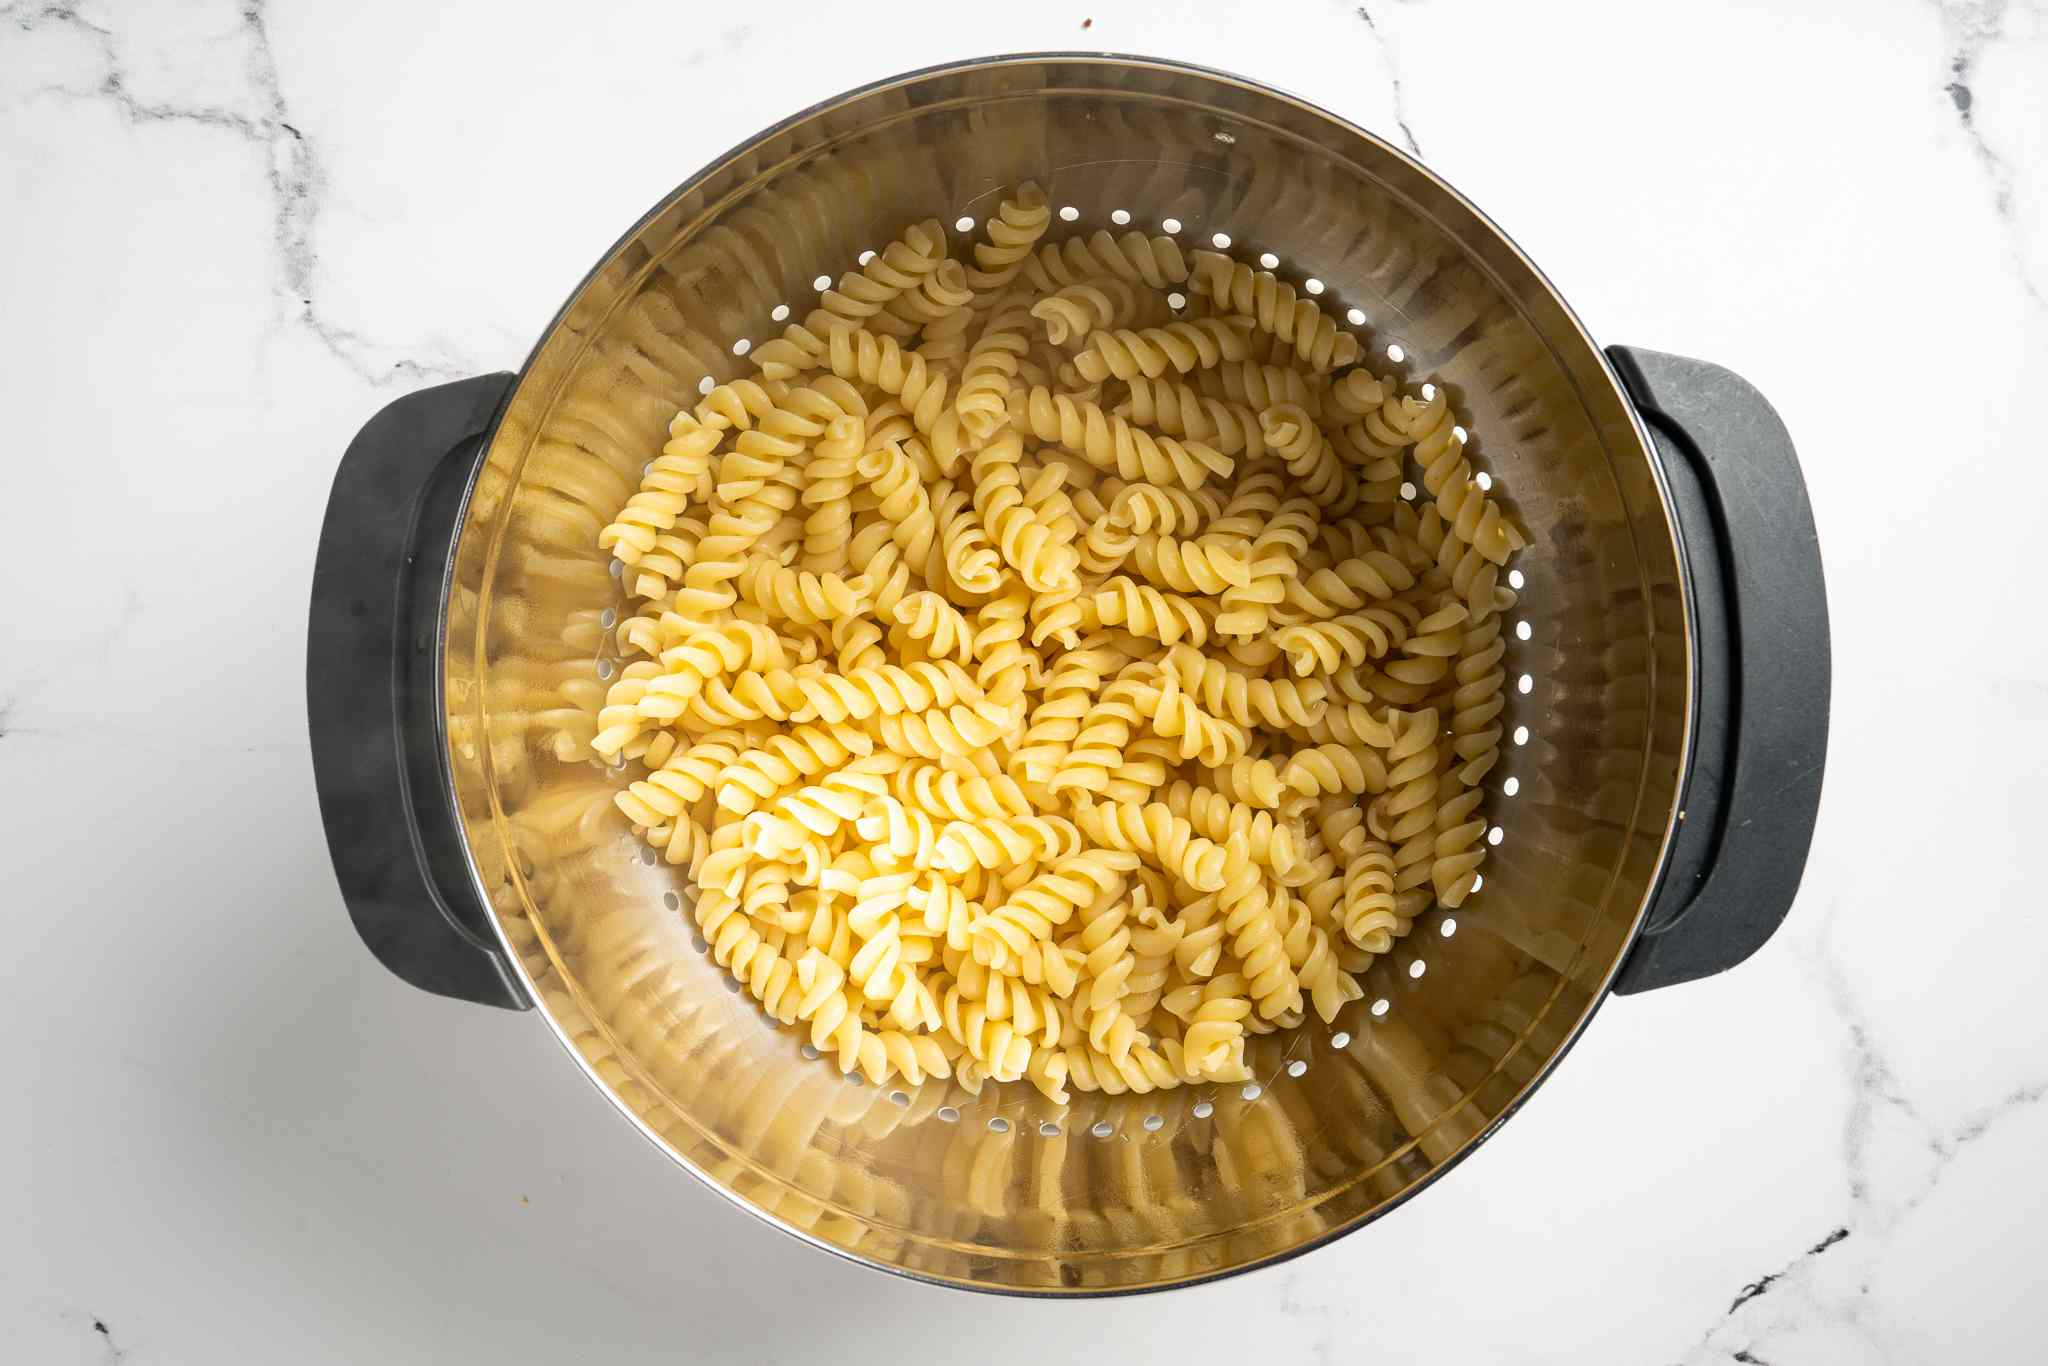 drained pasta in a colander